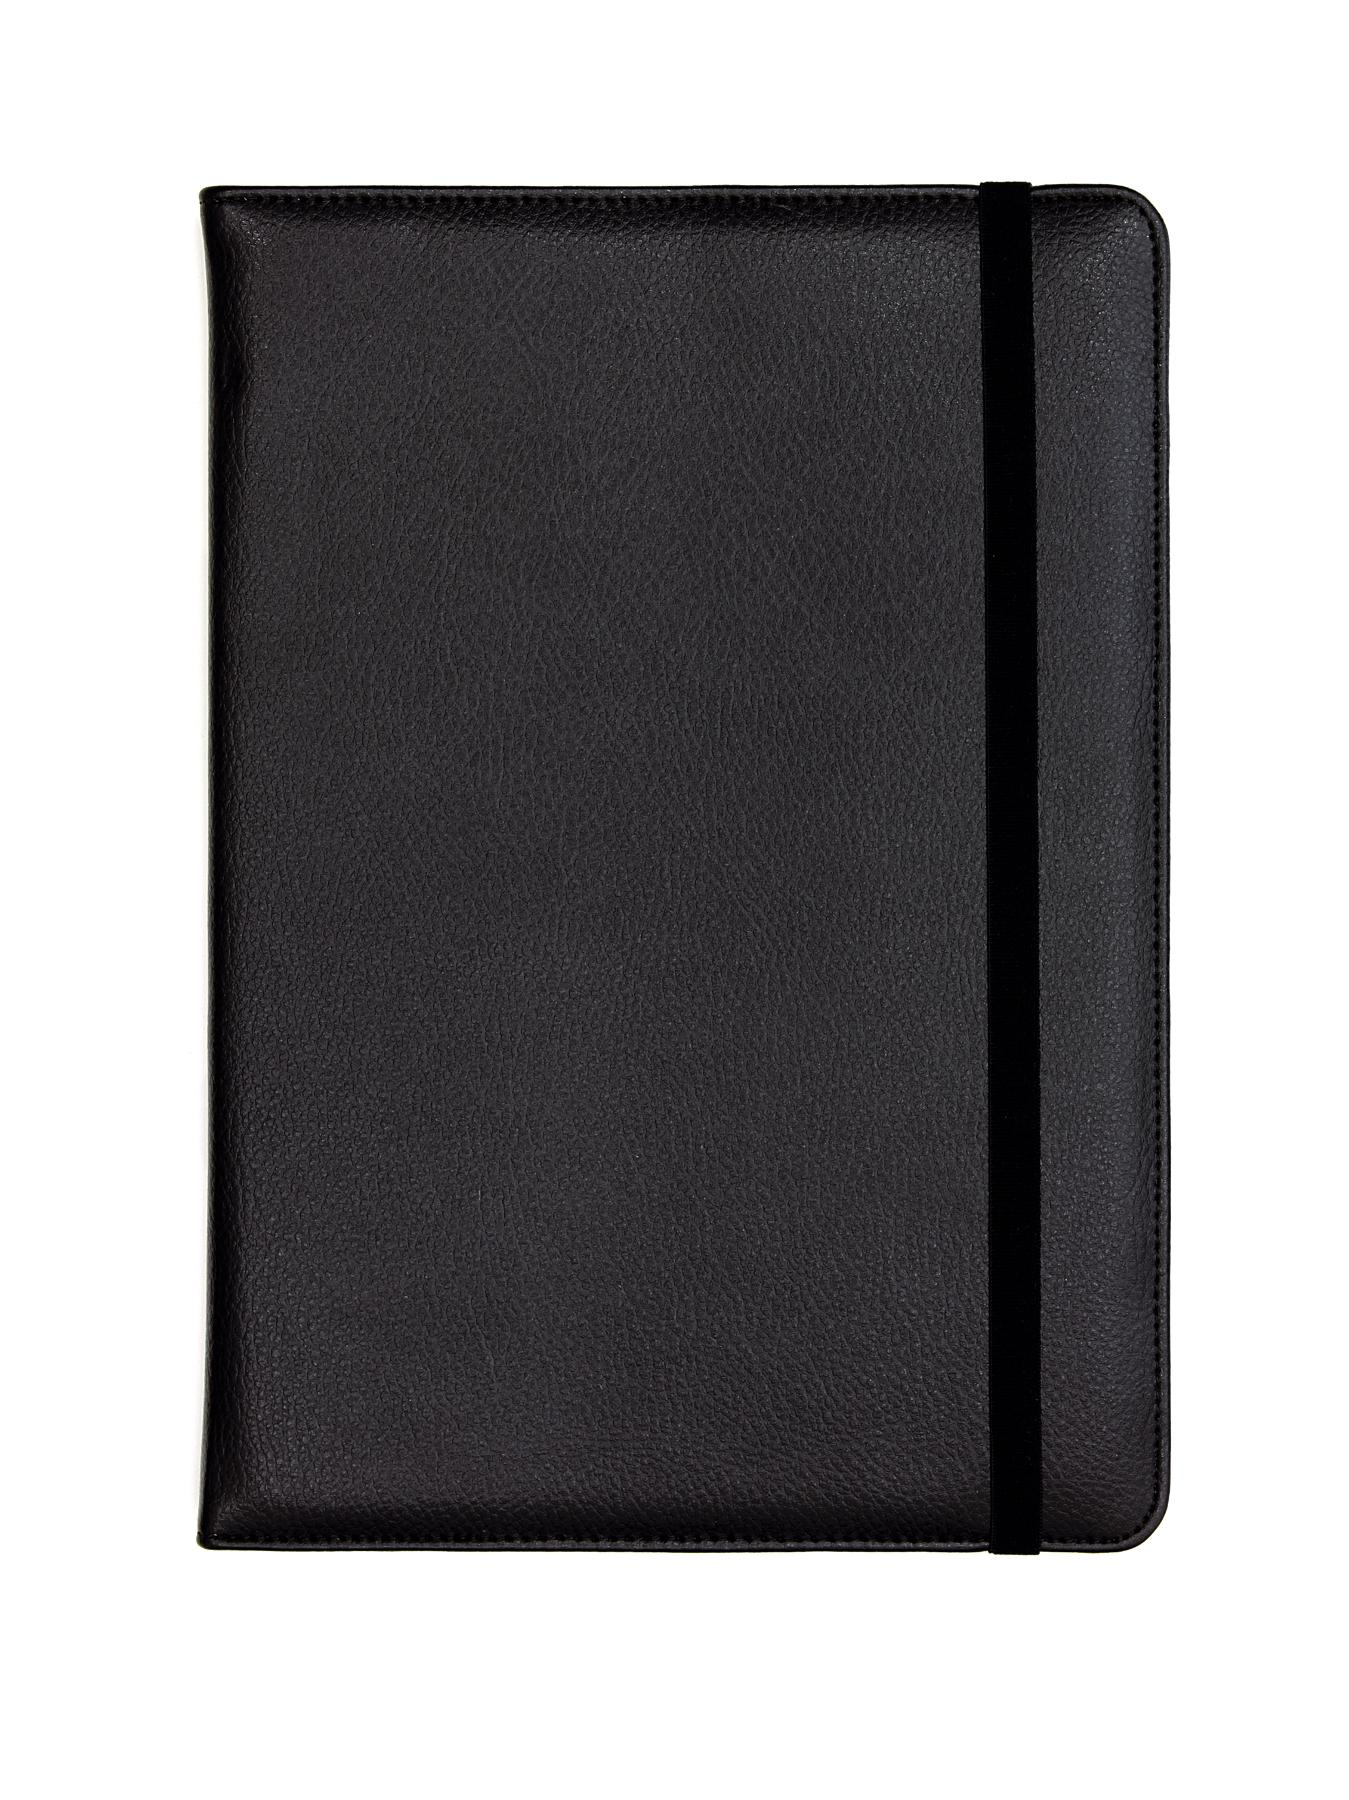 Case It Universal 10 inch Tablet Case - Black